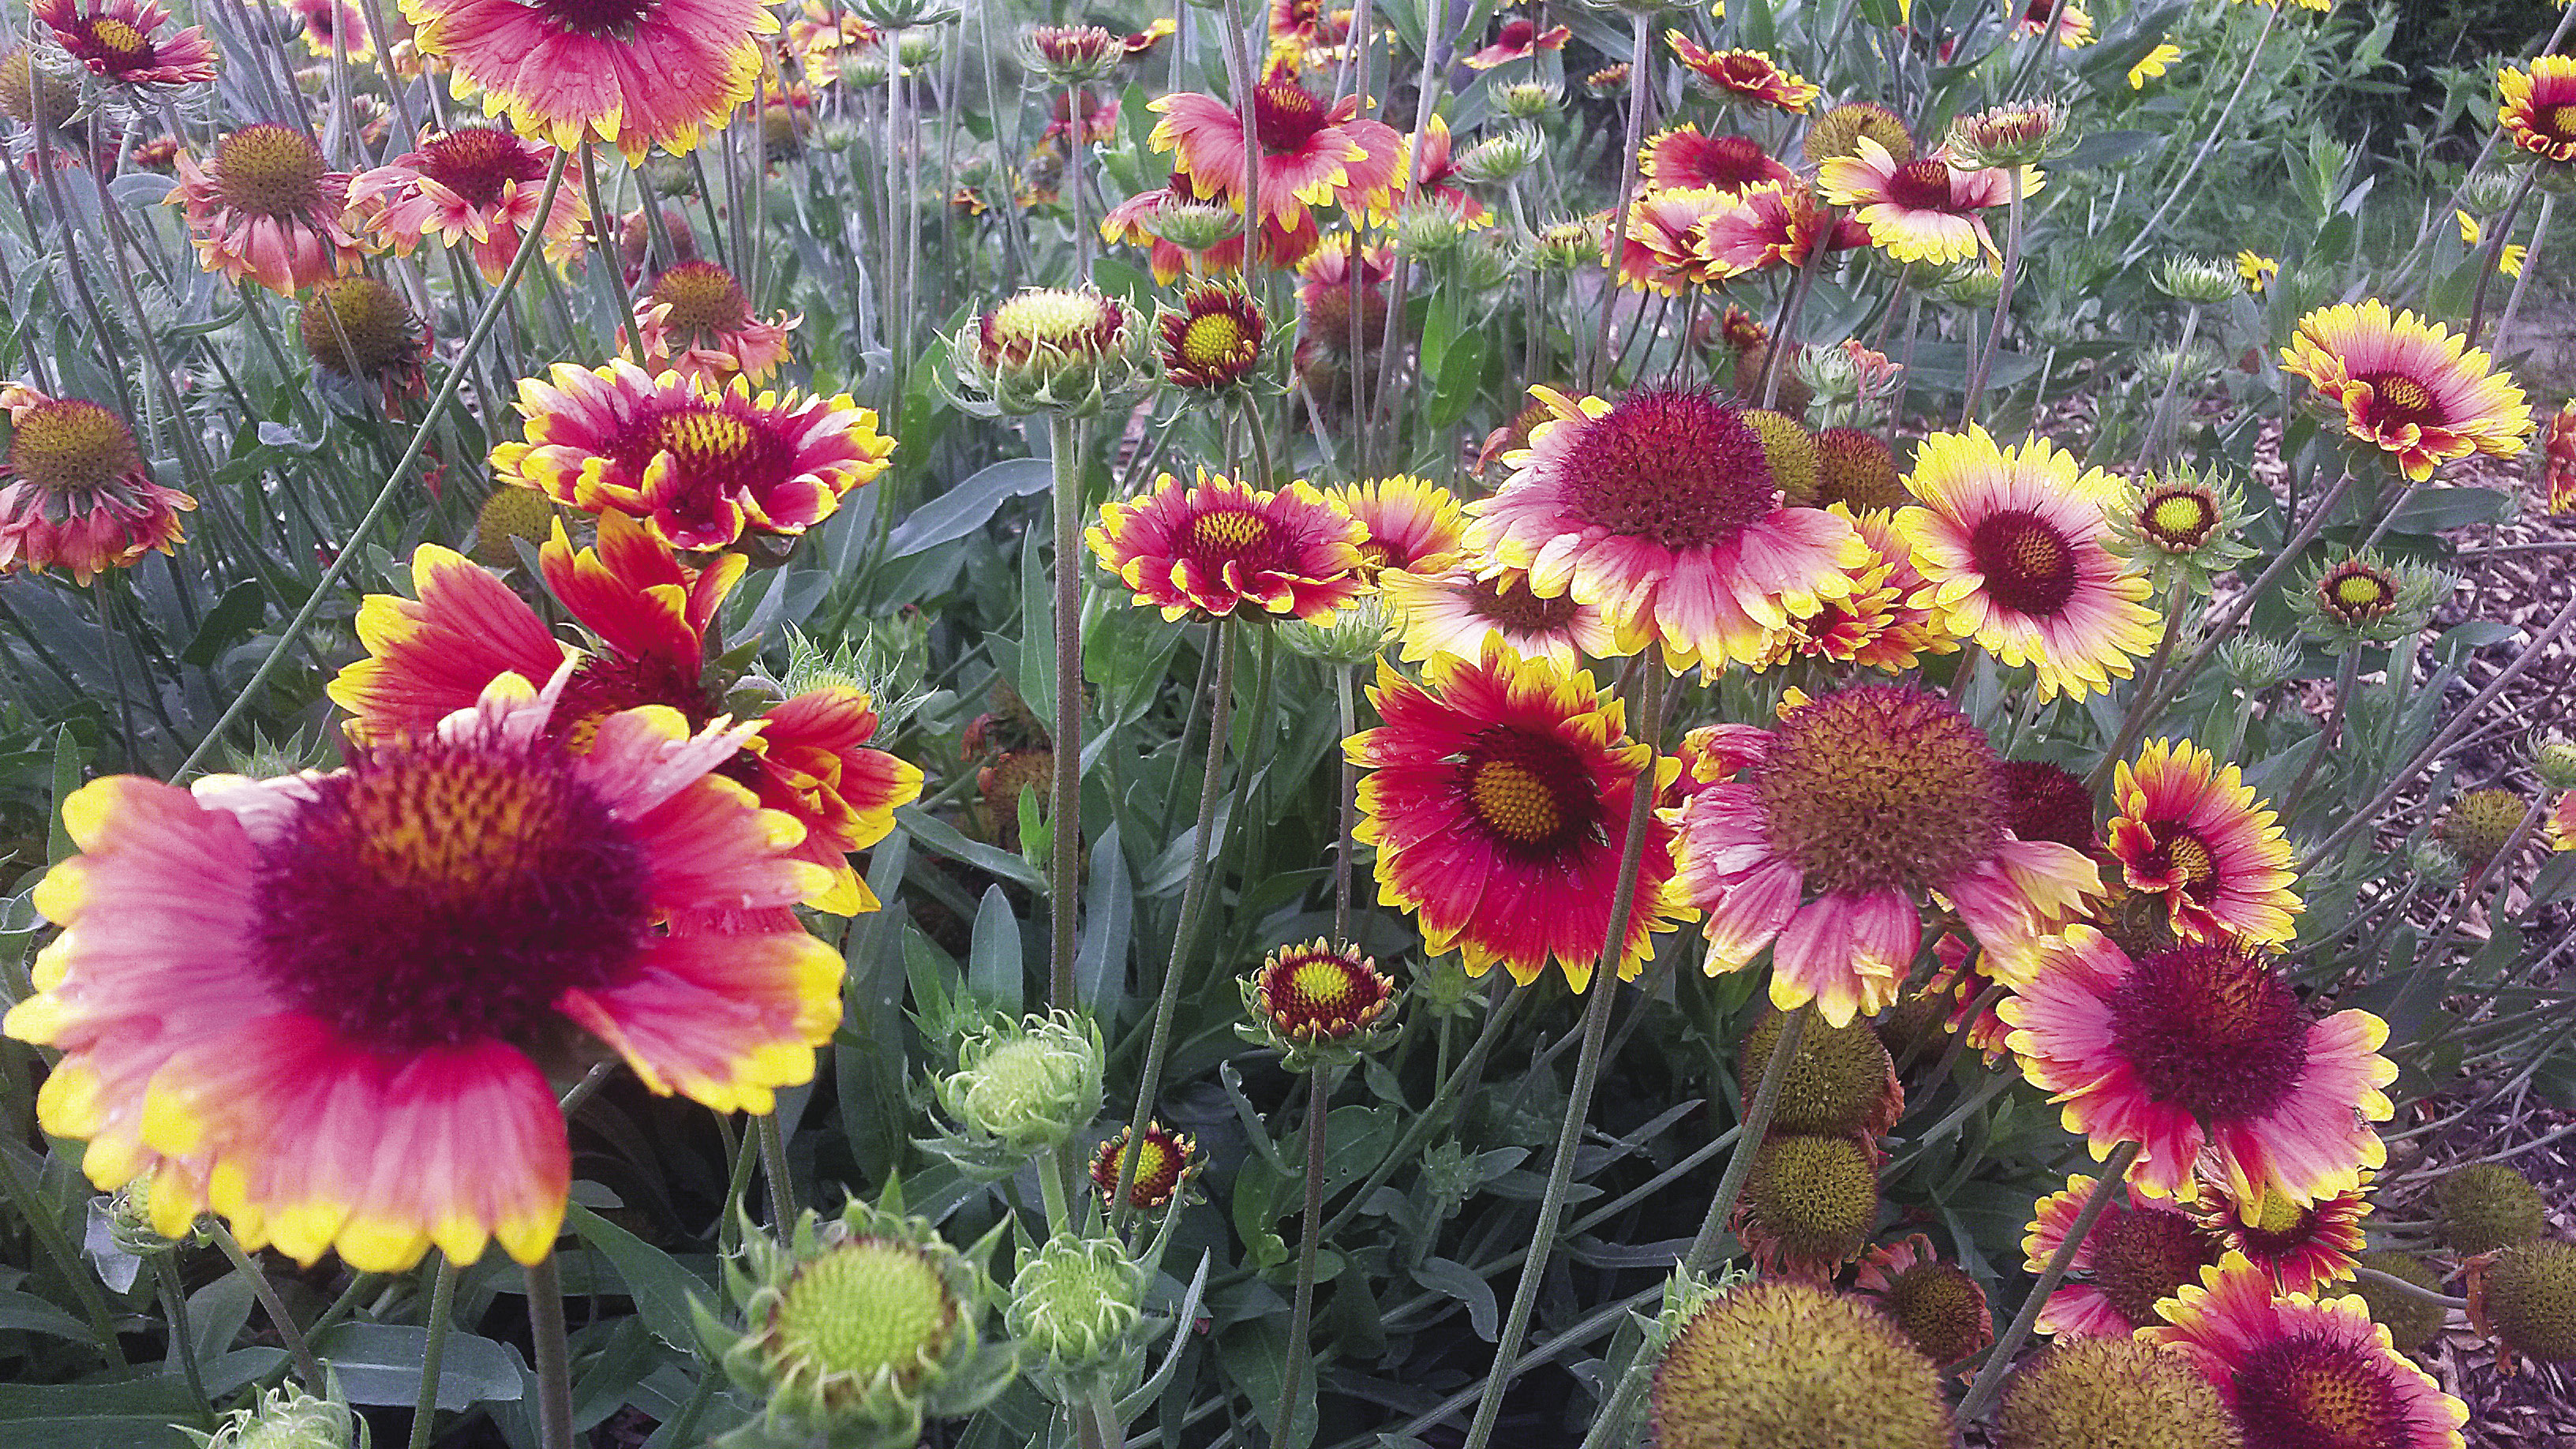 Native plants, like the blanket flower, attract bees, butterflies, hummingbirds, and other vital species.